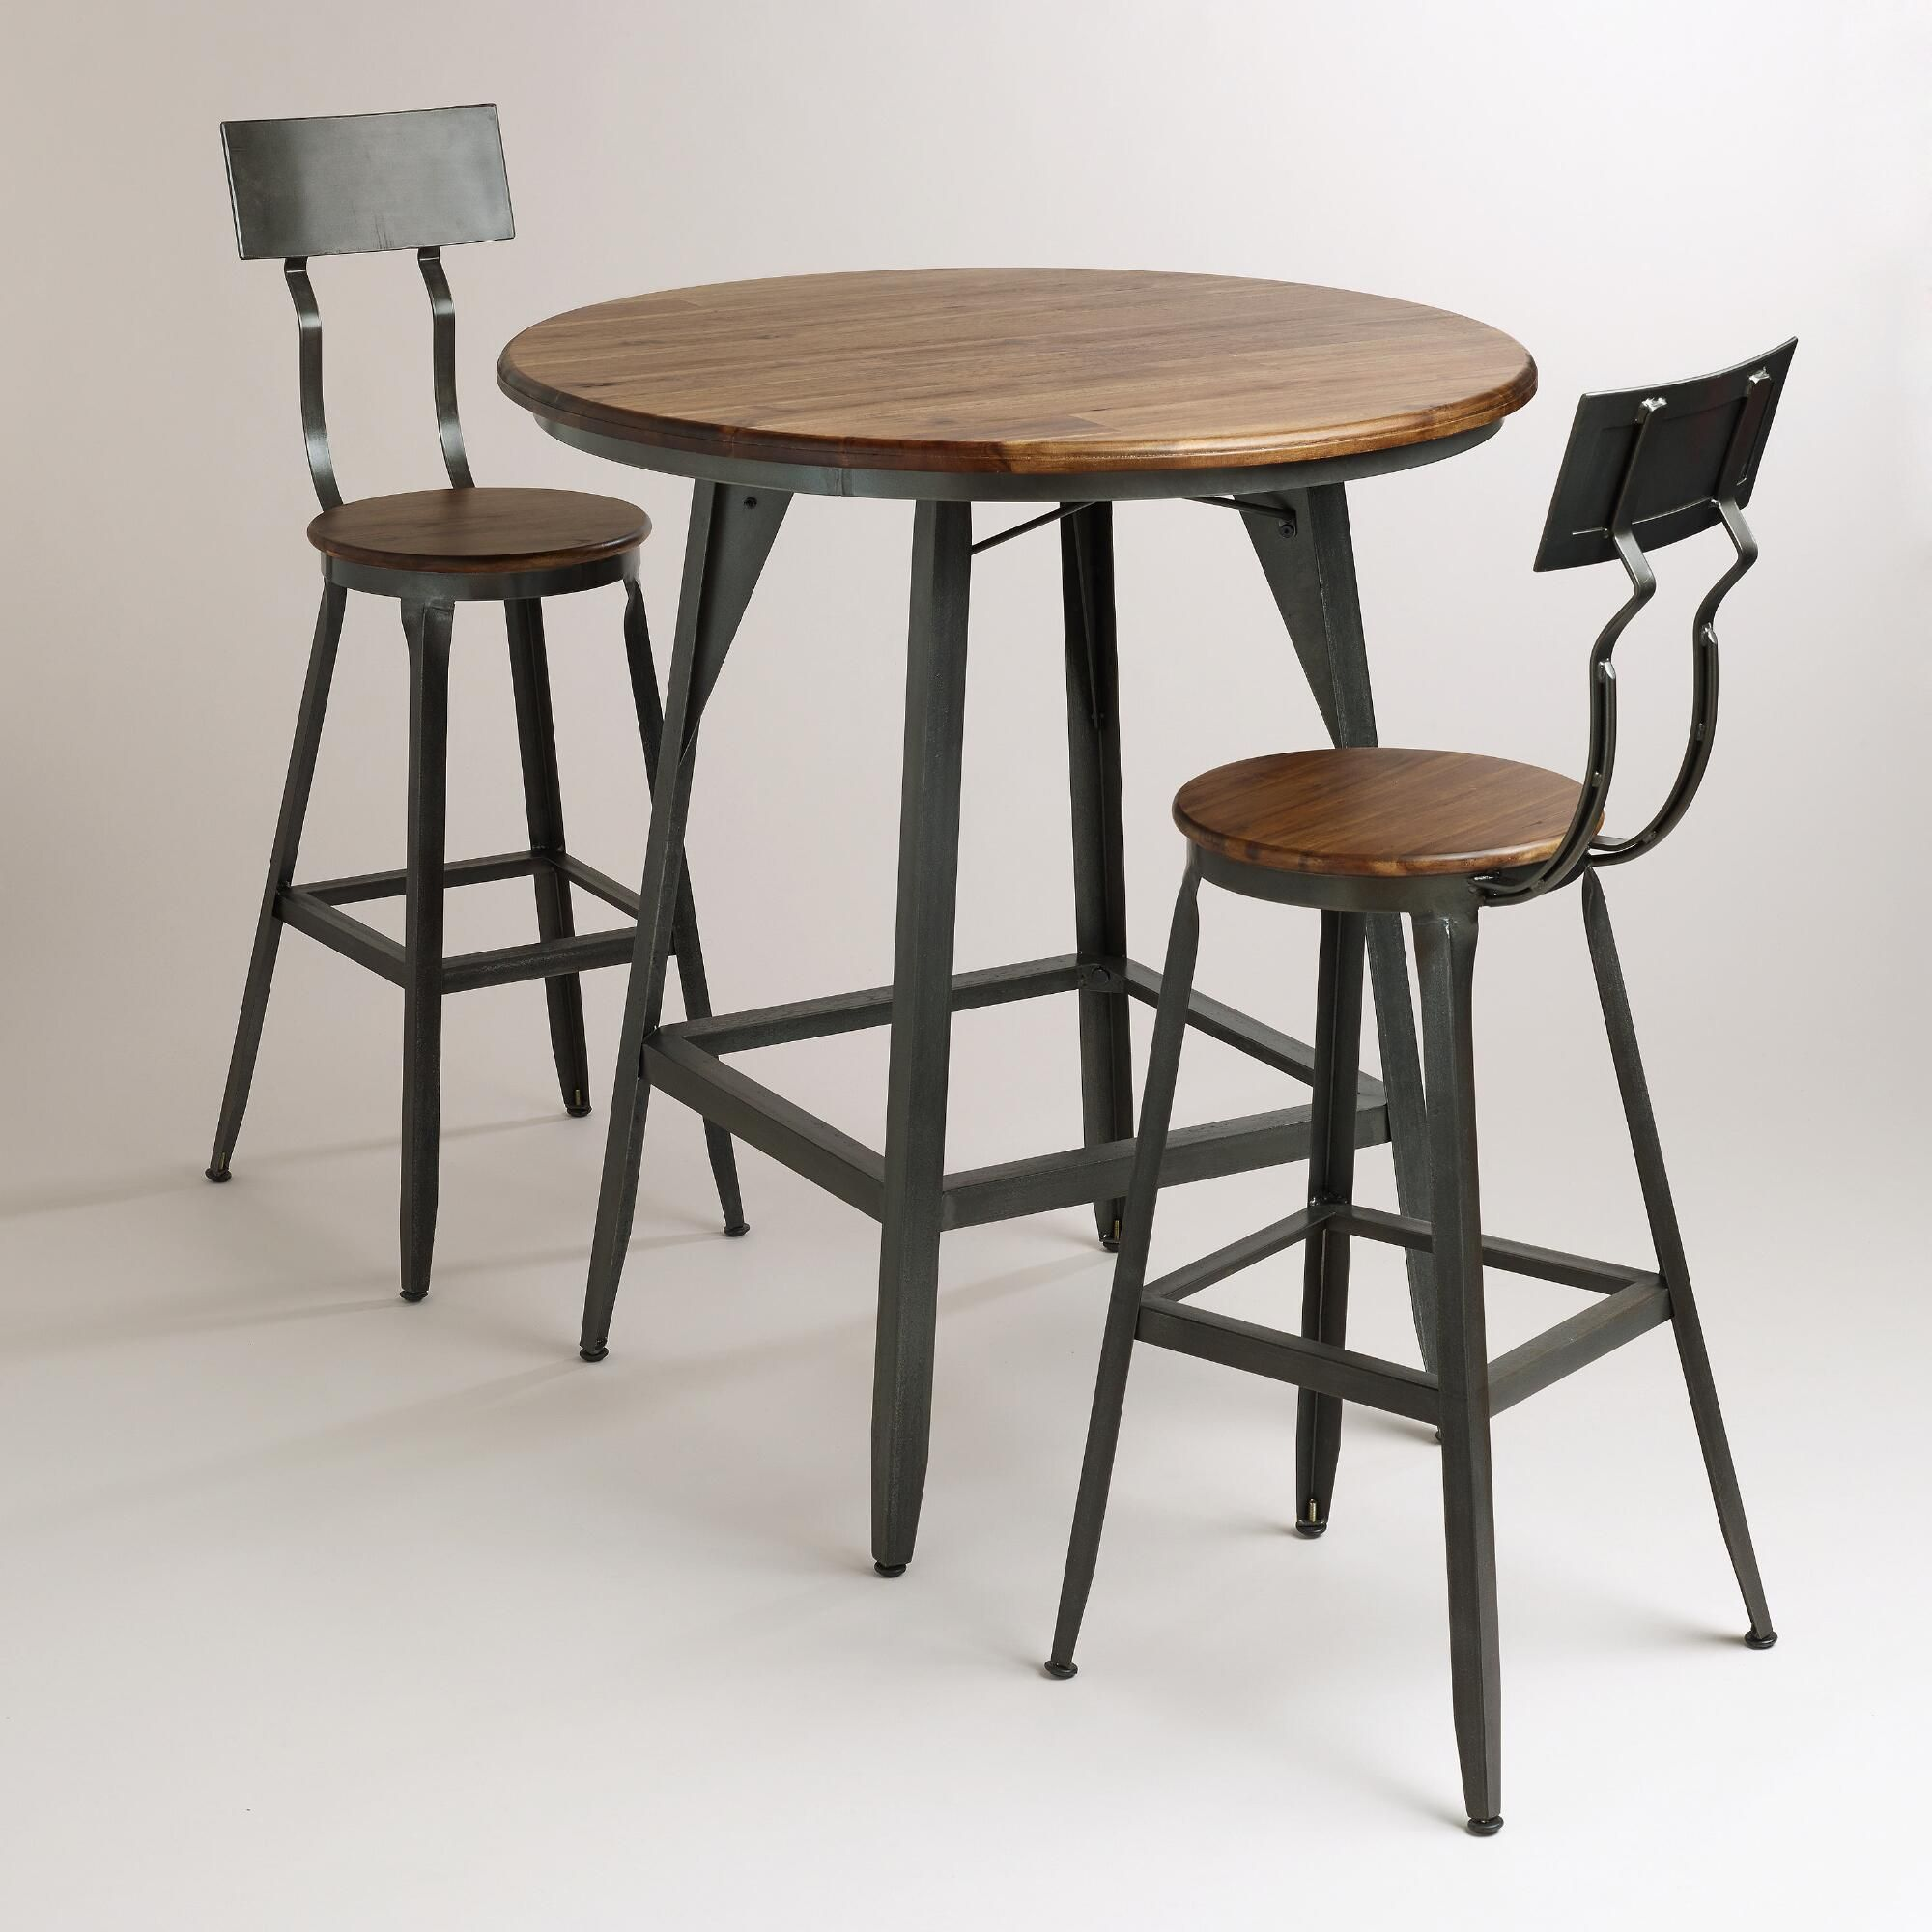 Our handsome Hudson Pub Table exudes big city style that recalls